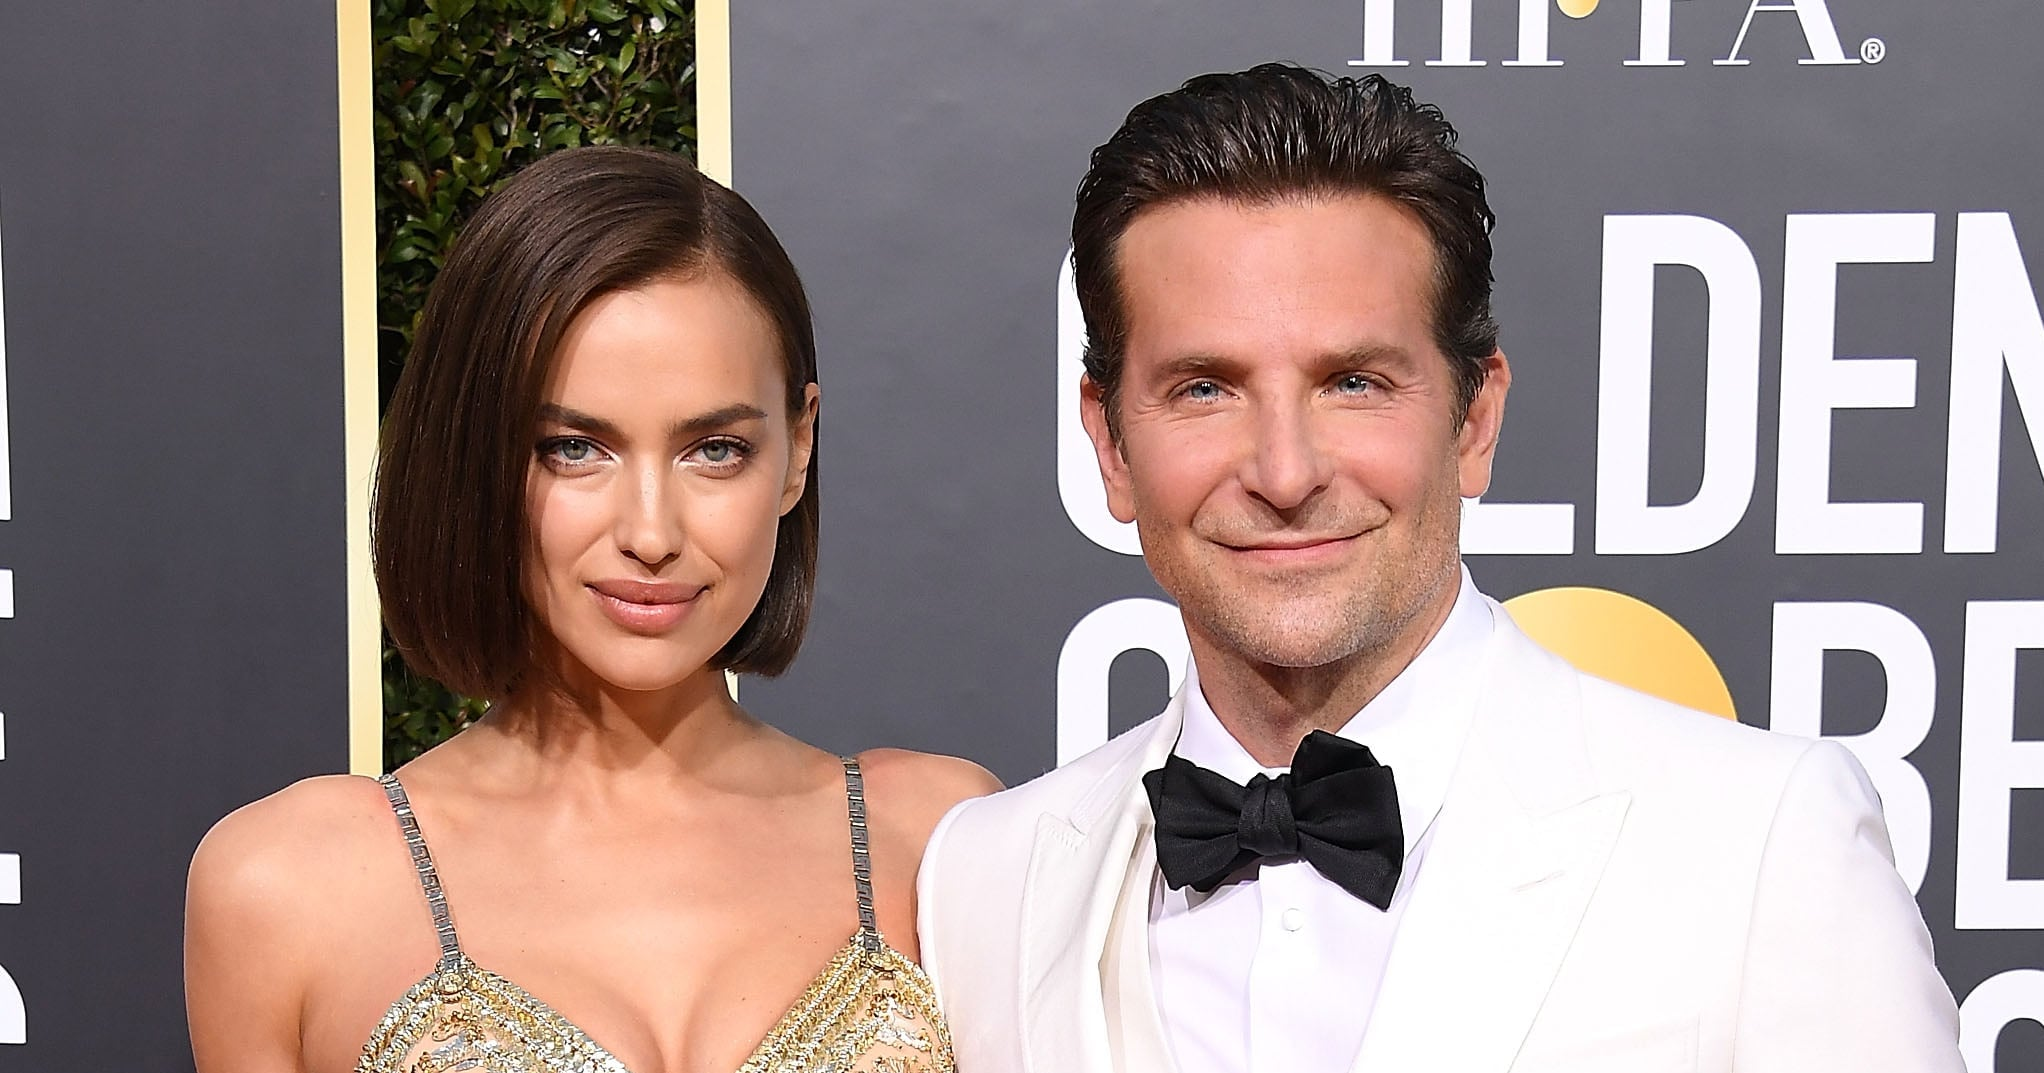 Bradley Cooper and Irina Shayk Reportedly Agree to Coparent Their Daughter, Lea, in New York